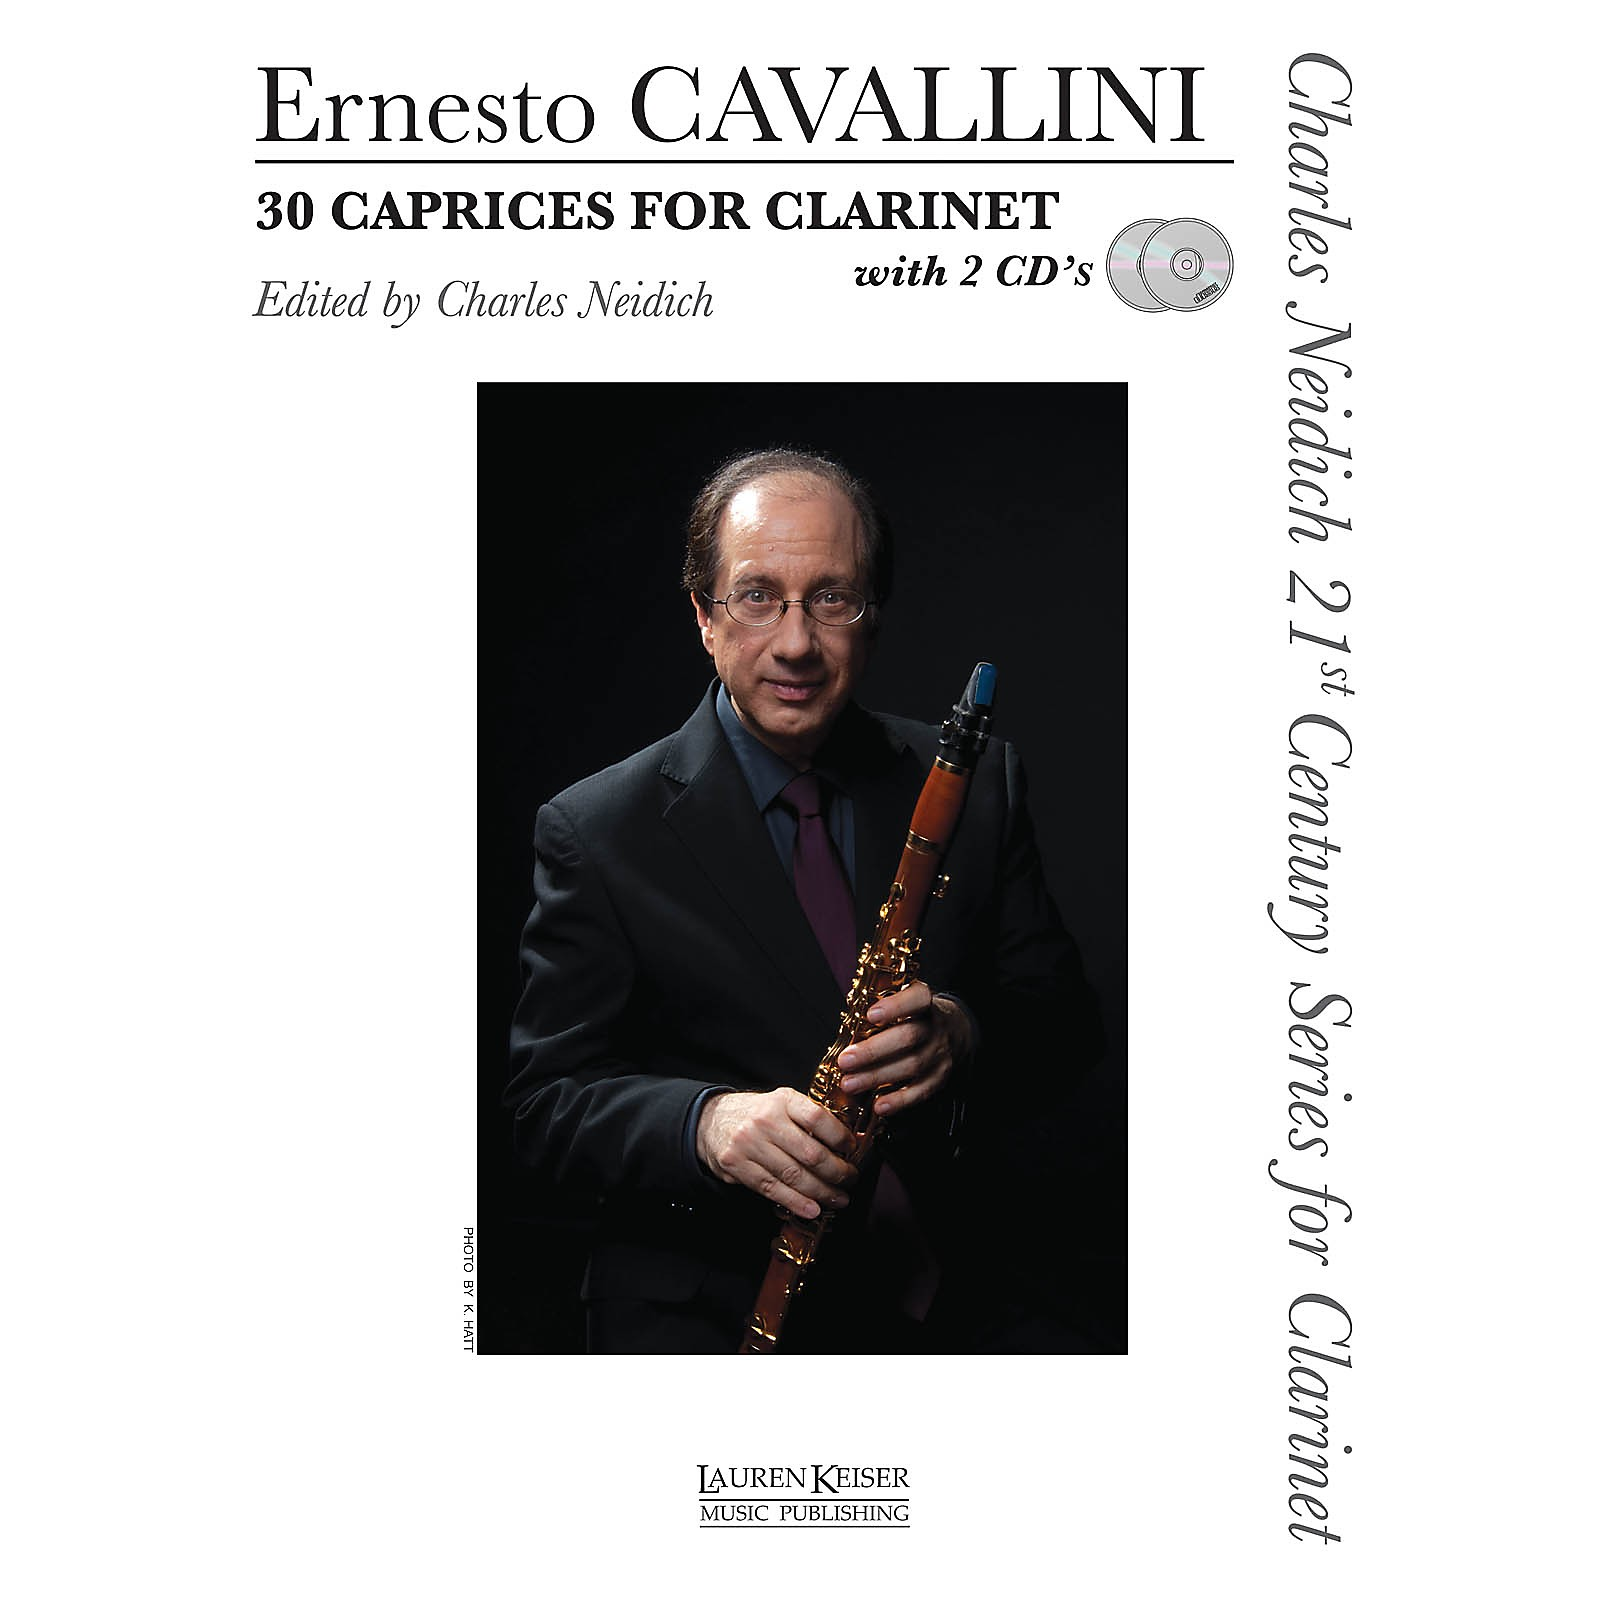 Lauren Keiser Music Publishing 30 Caprices for Clarinet LKM Music BK/Online Auido Composed by Ernesto Cavallini Edited by Charles Neidich